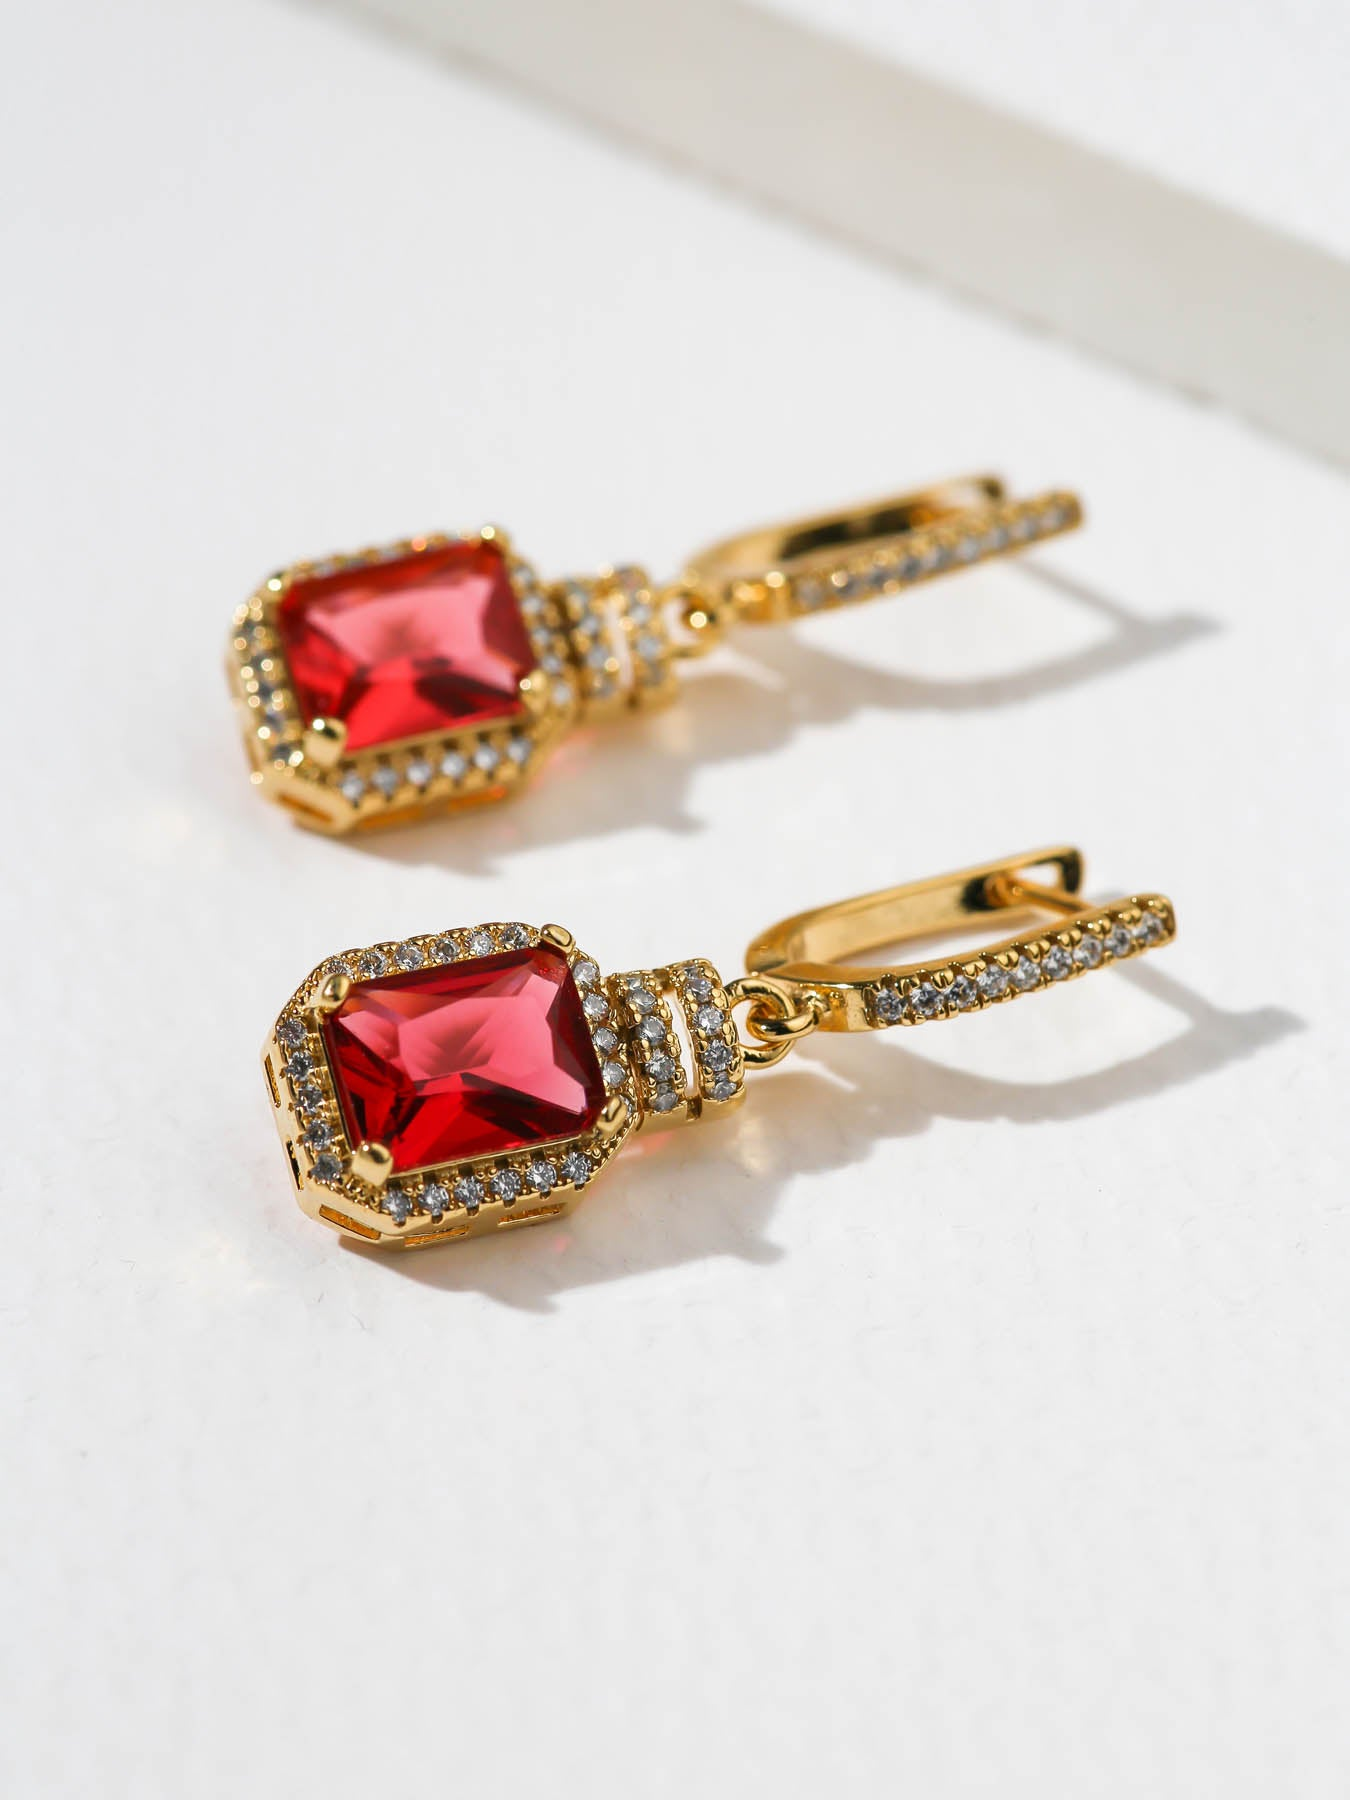 The Scarlet Earrings